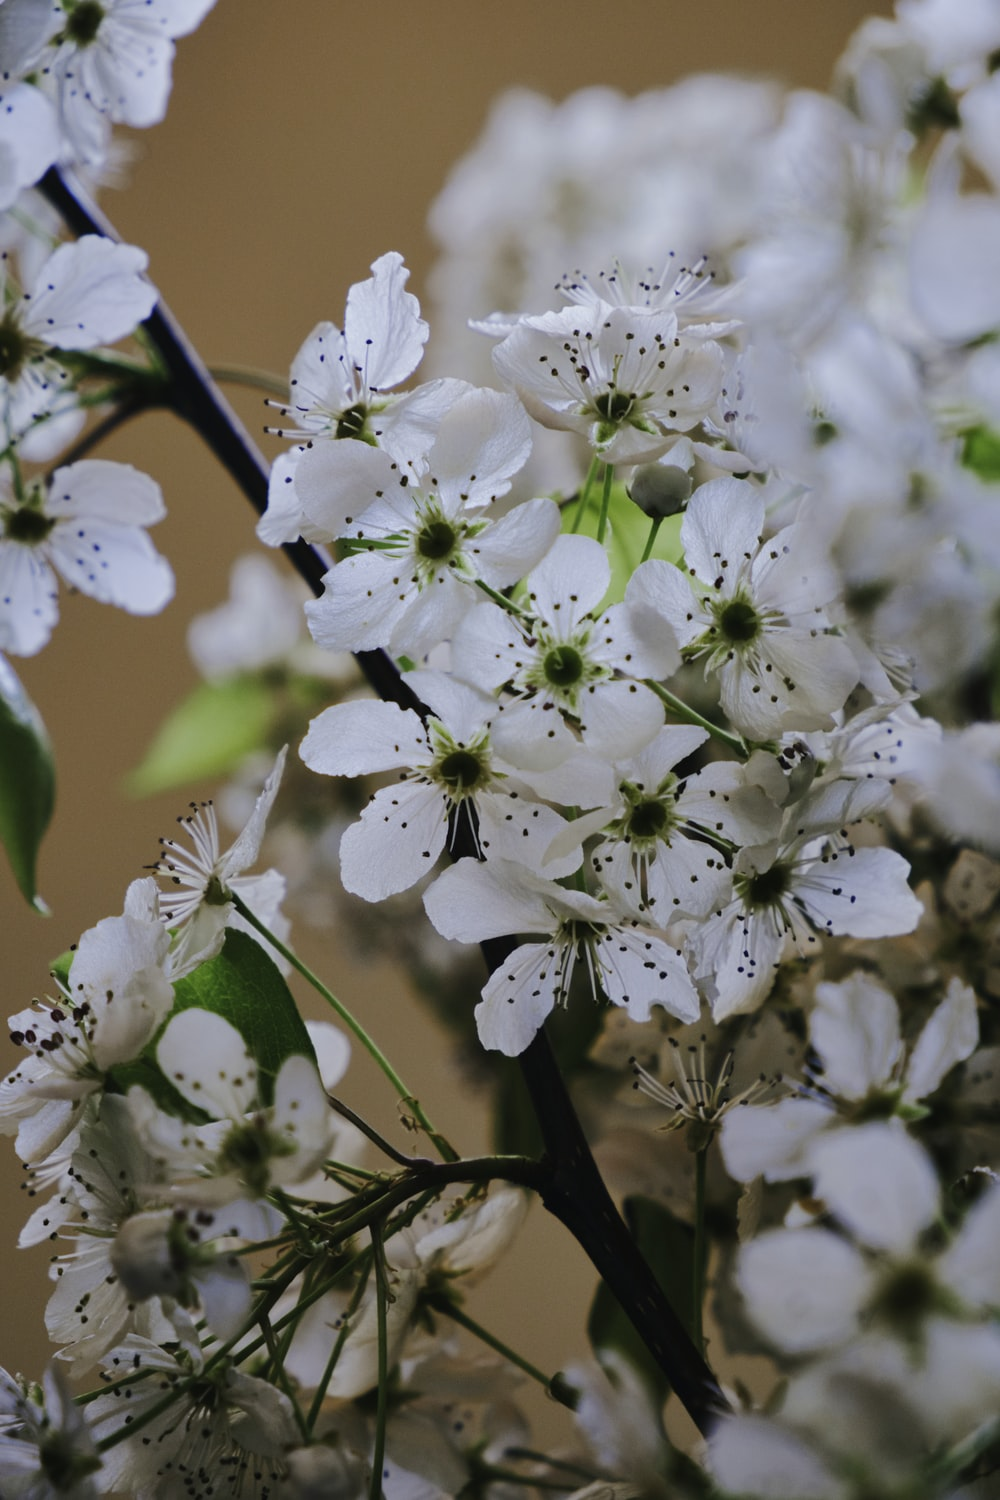 close-up photography of white flowers